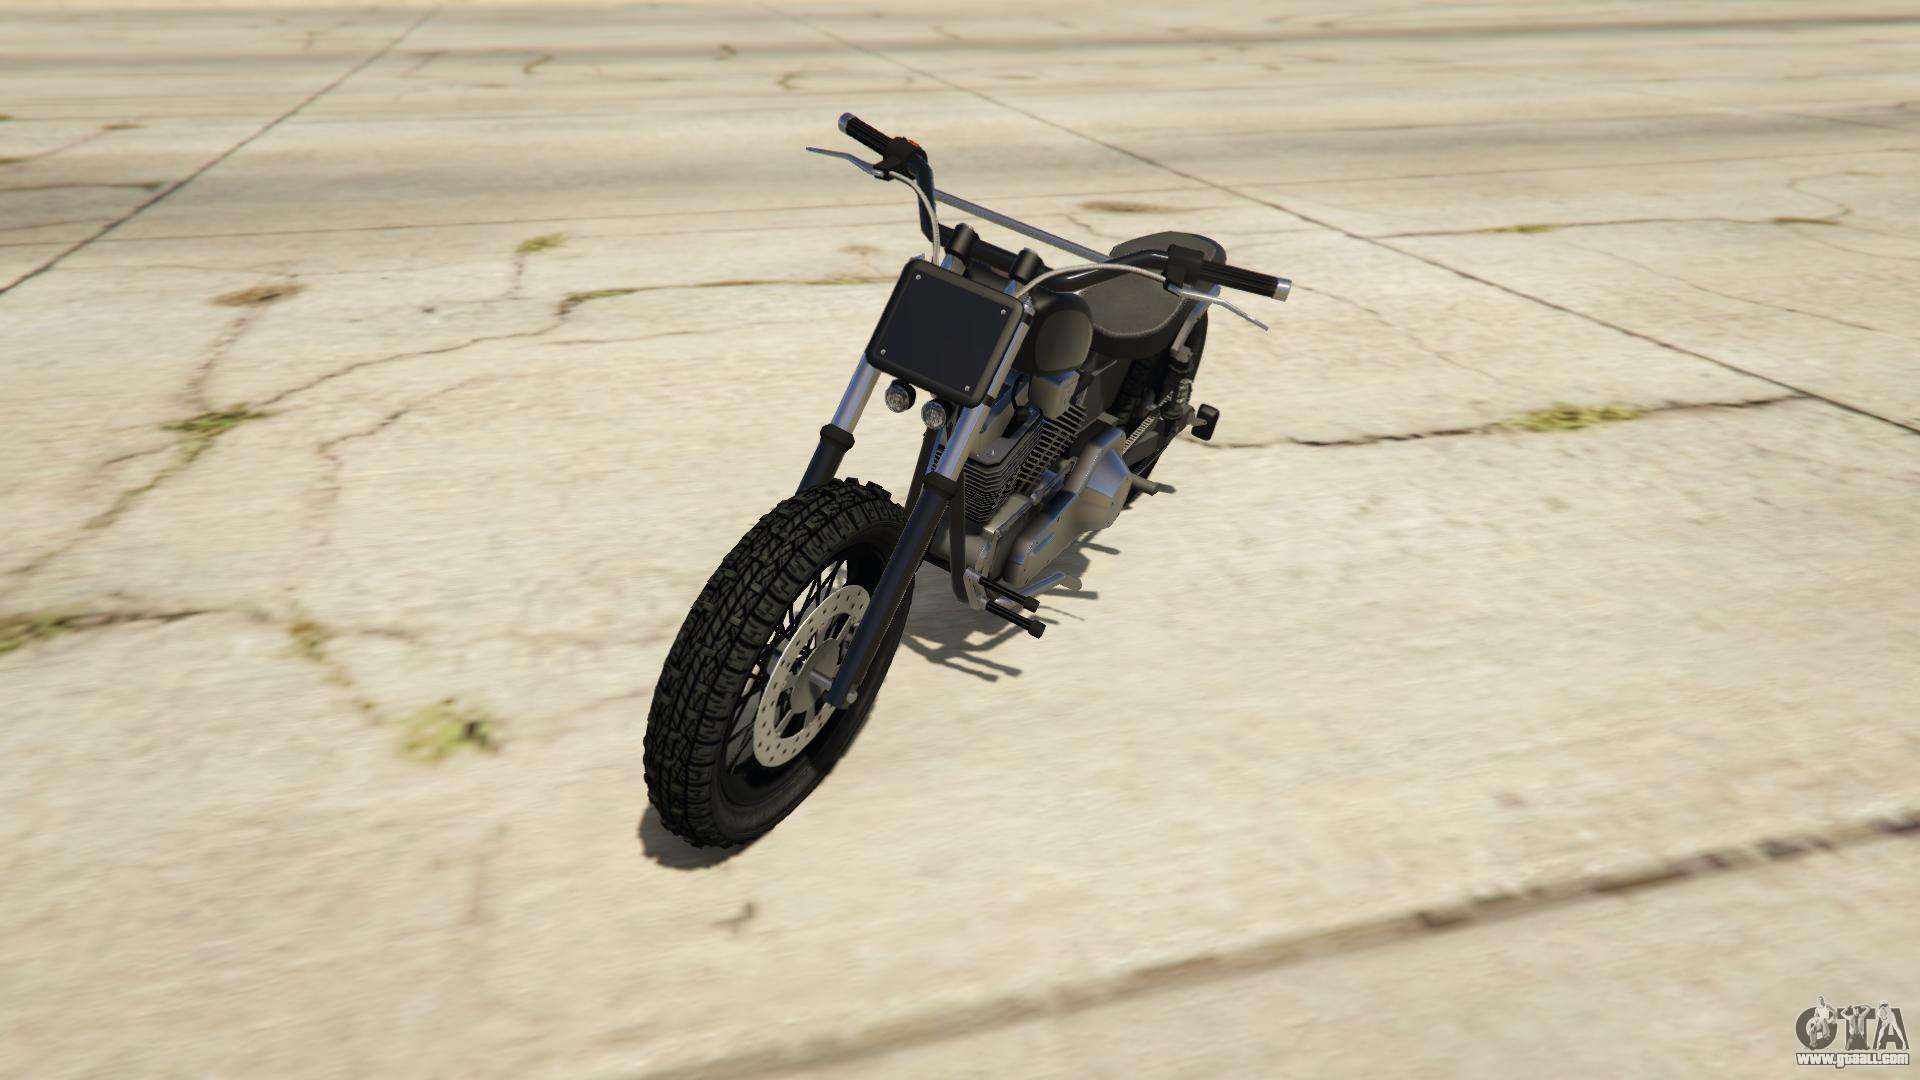 Western Motorcycle Company Cliffhanger from GTA Online - front view